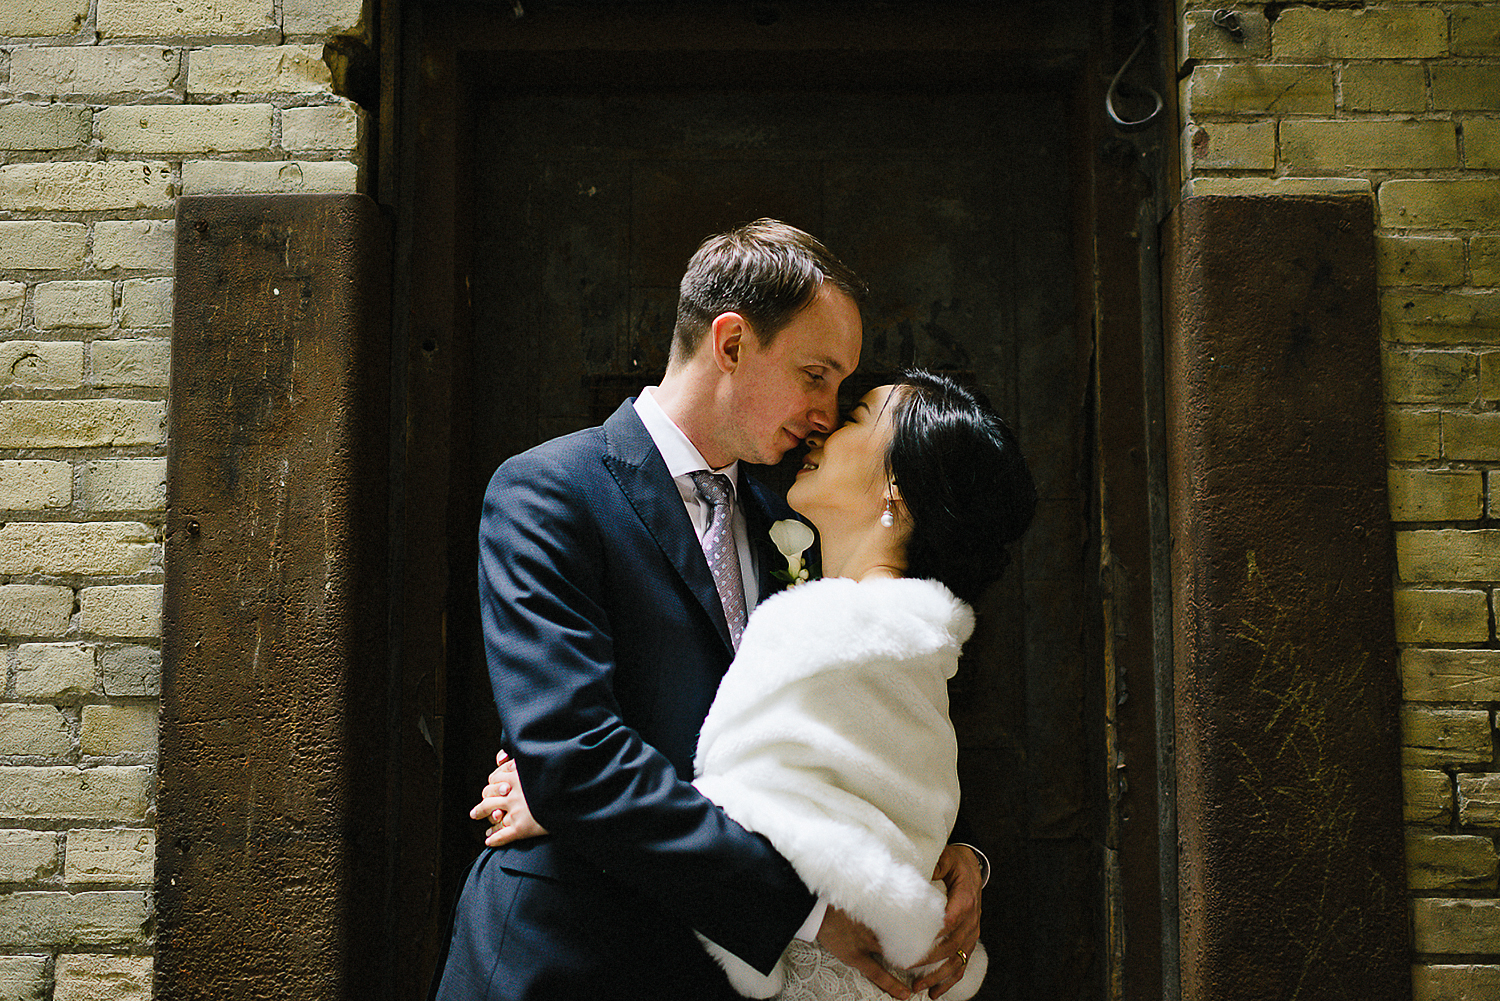 Best-Wedding-Photographers-Toronto_-Urban-City-Wedding-Photography-Downtown-Toronto-Photographer_Vintage-Bride-and-Groom-Details_The-Chase-Wedding-Venue_Candid-Photojournalistic-Documentary-Groom-and-Bride-Candid-Emotion.jpg